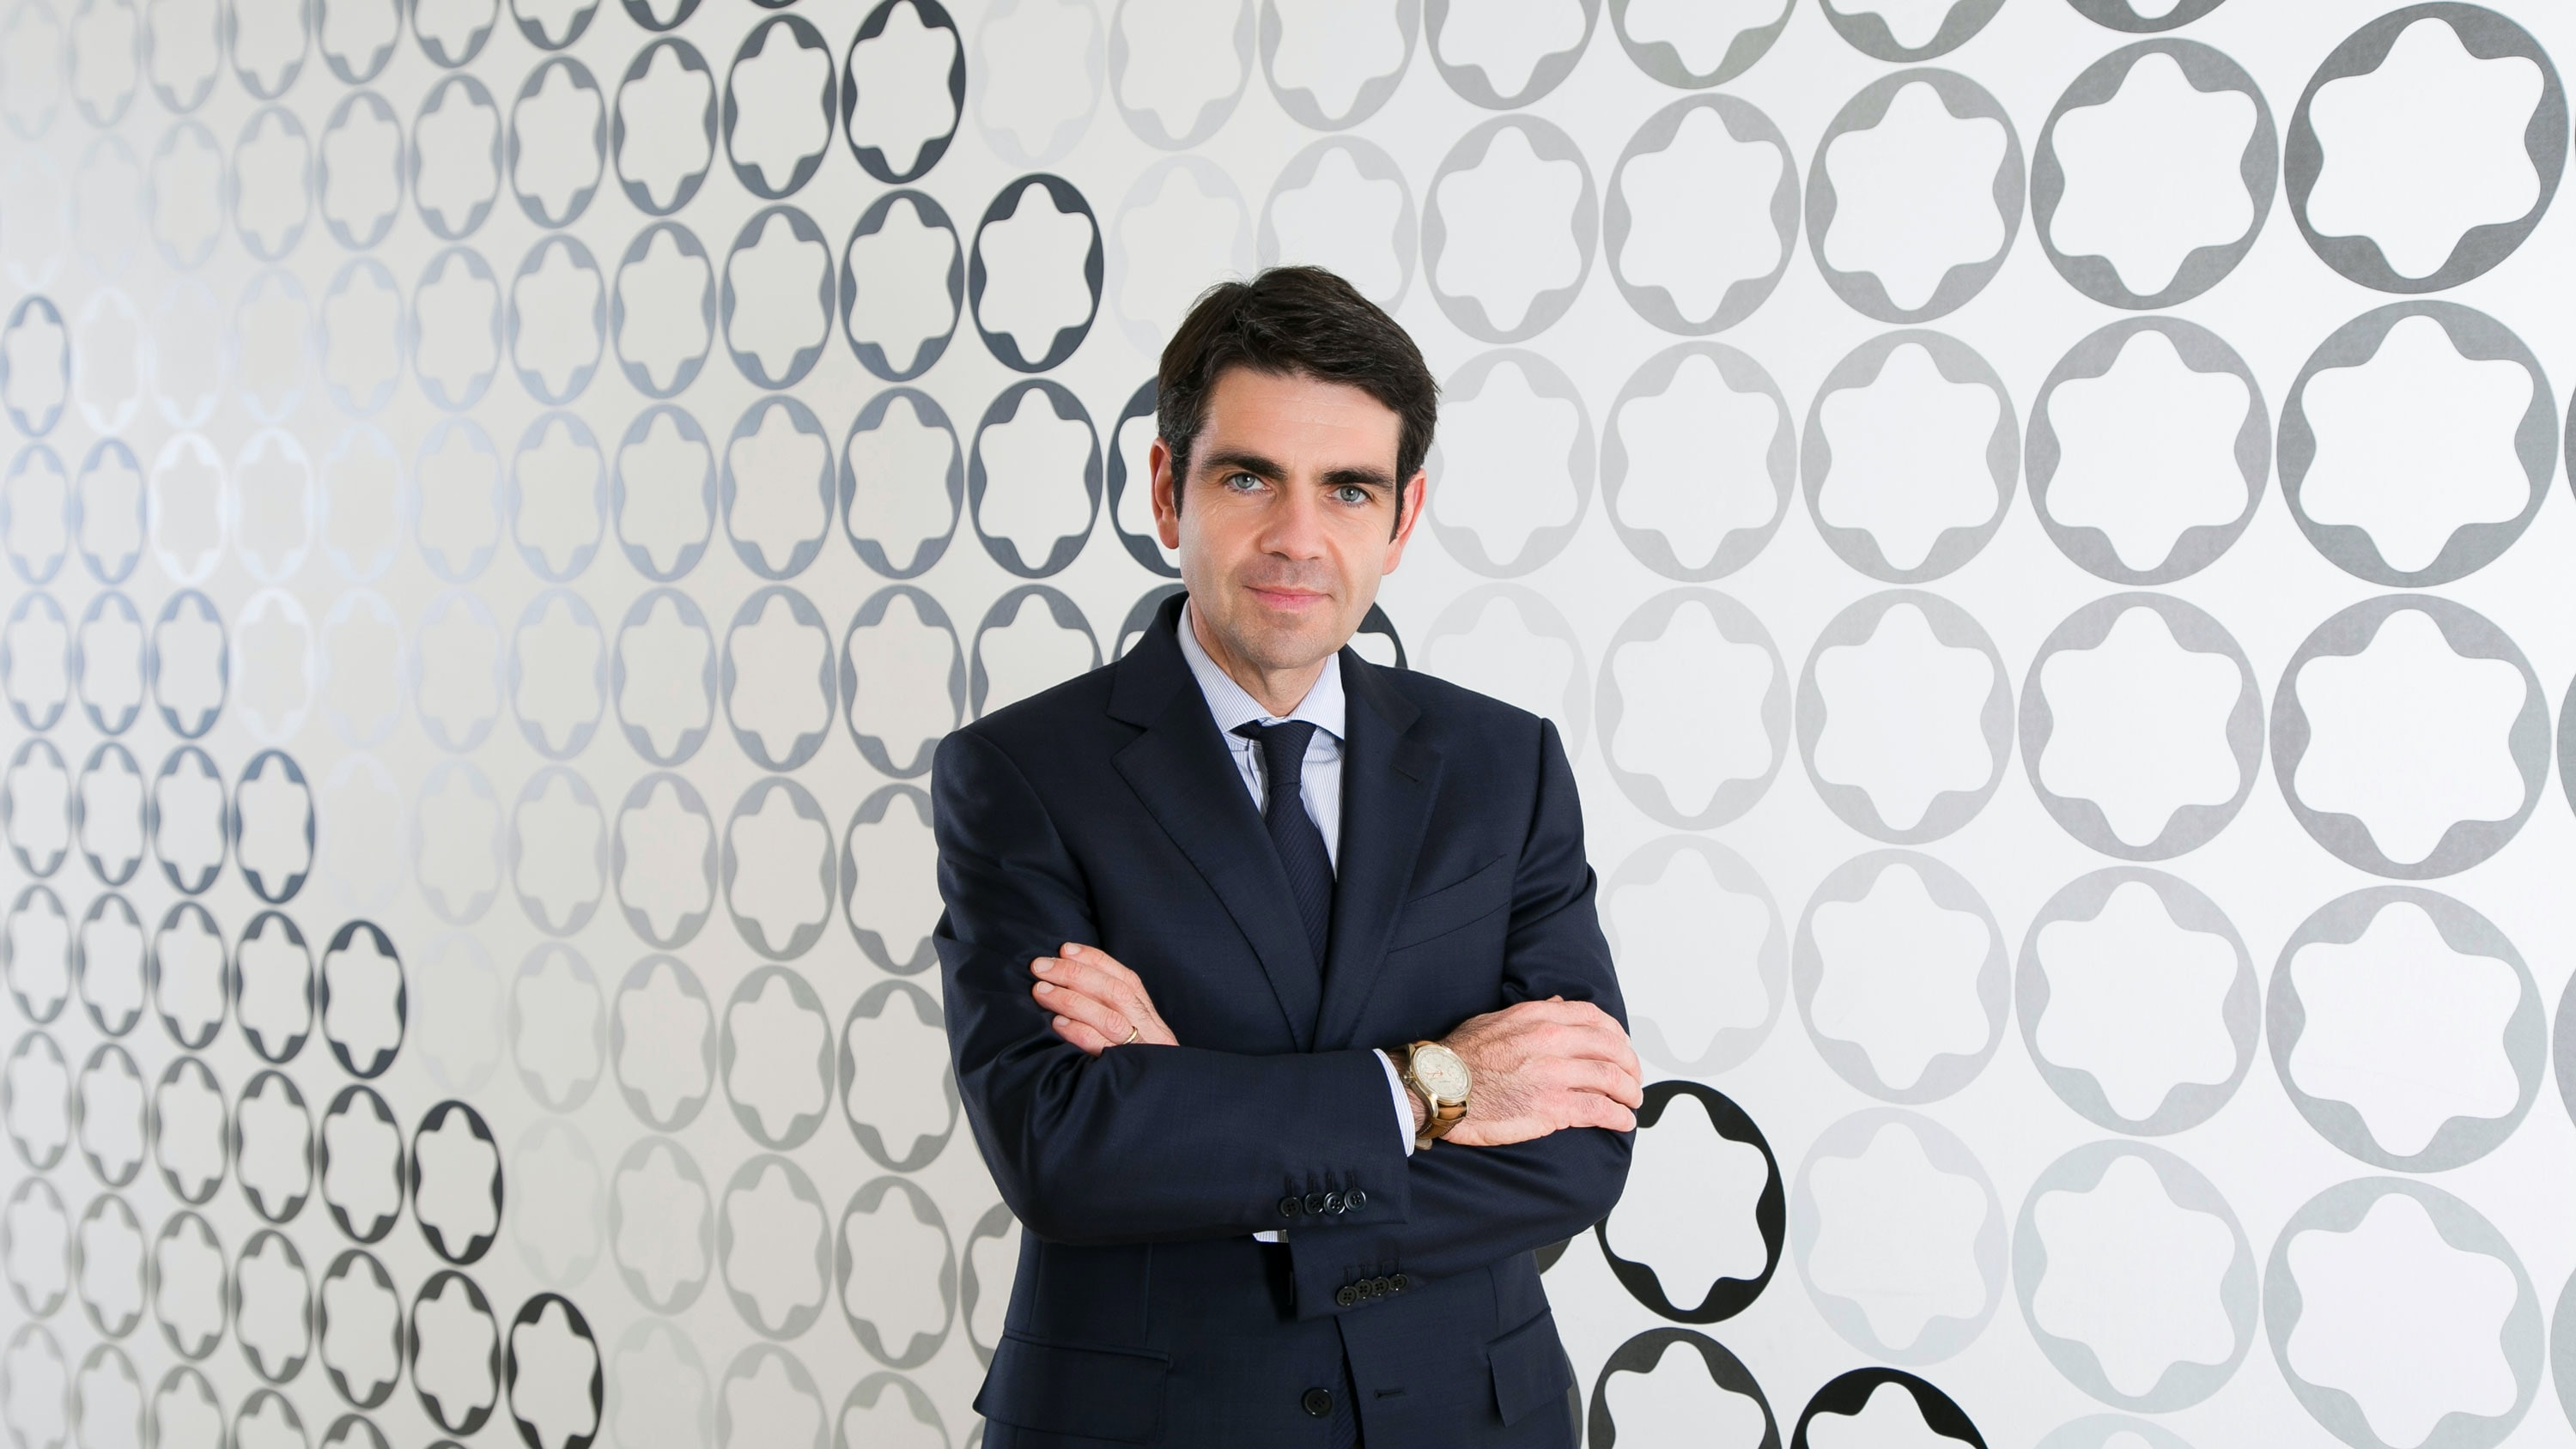 Personalities: The Richemont Group's New COO, Jérôme Lambert